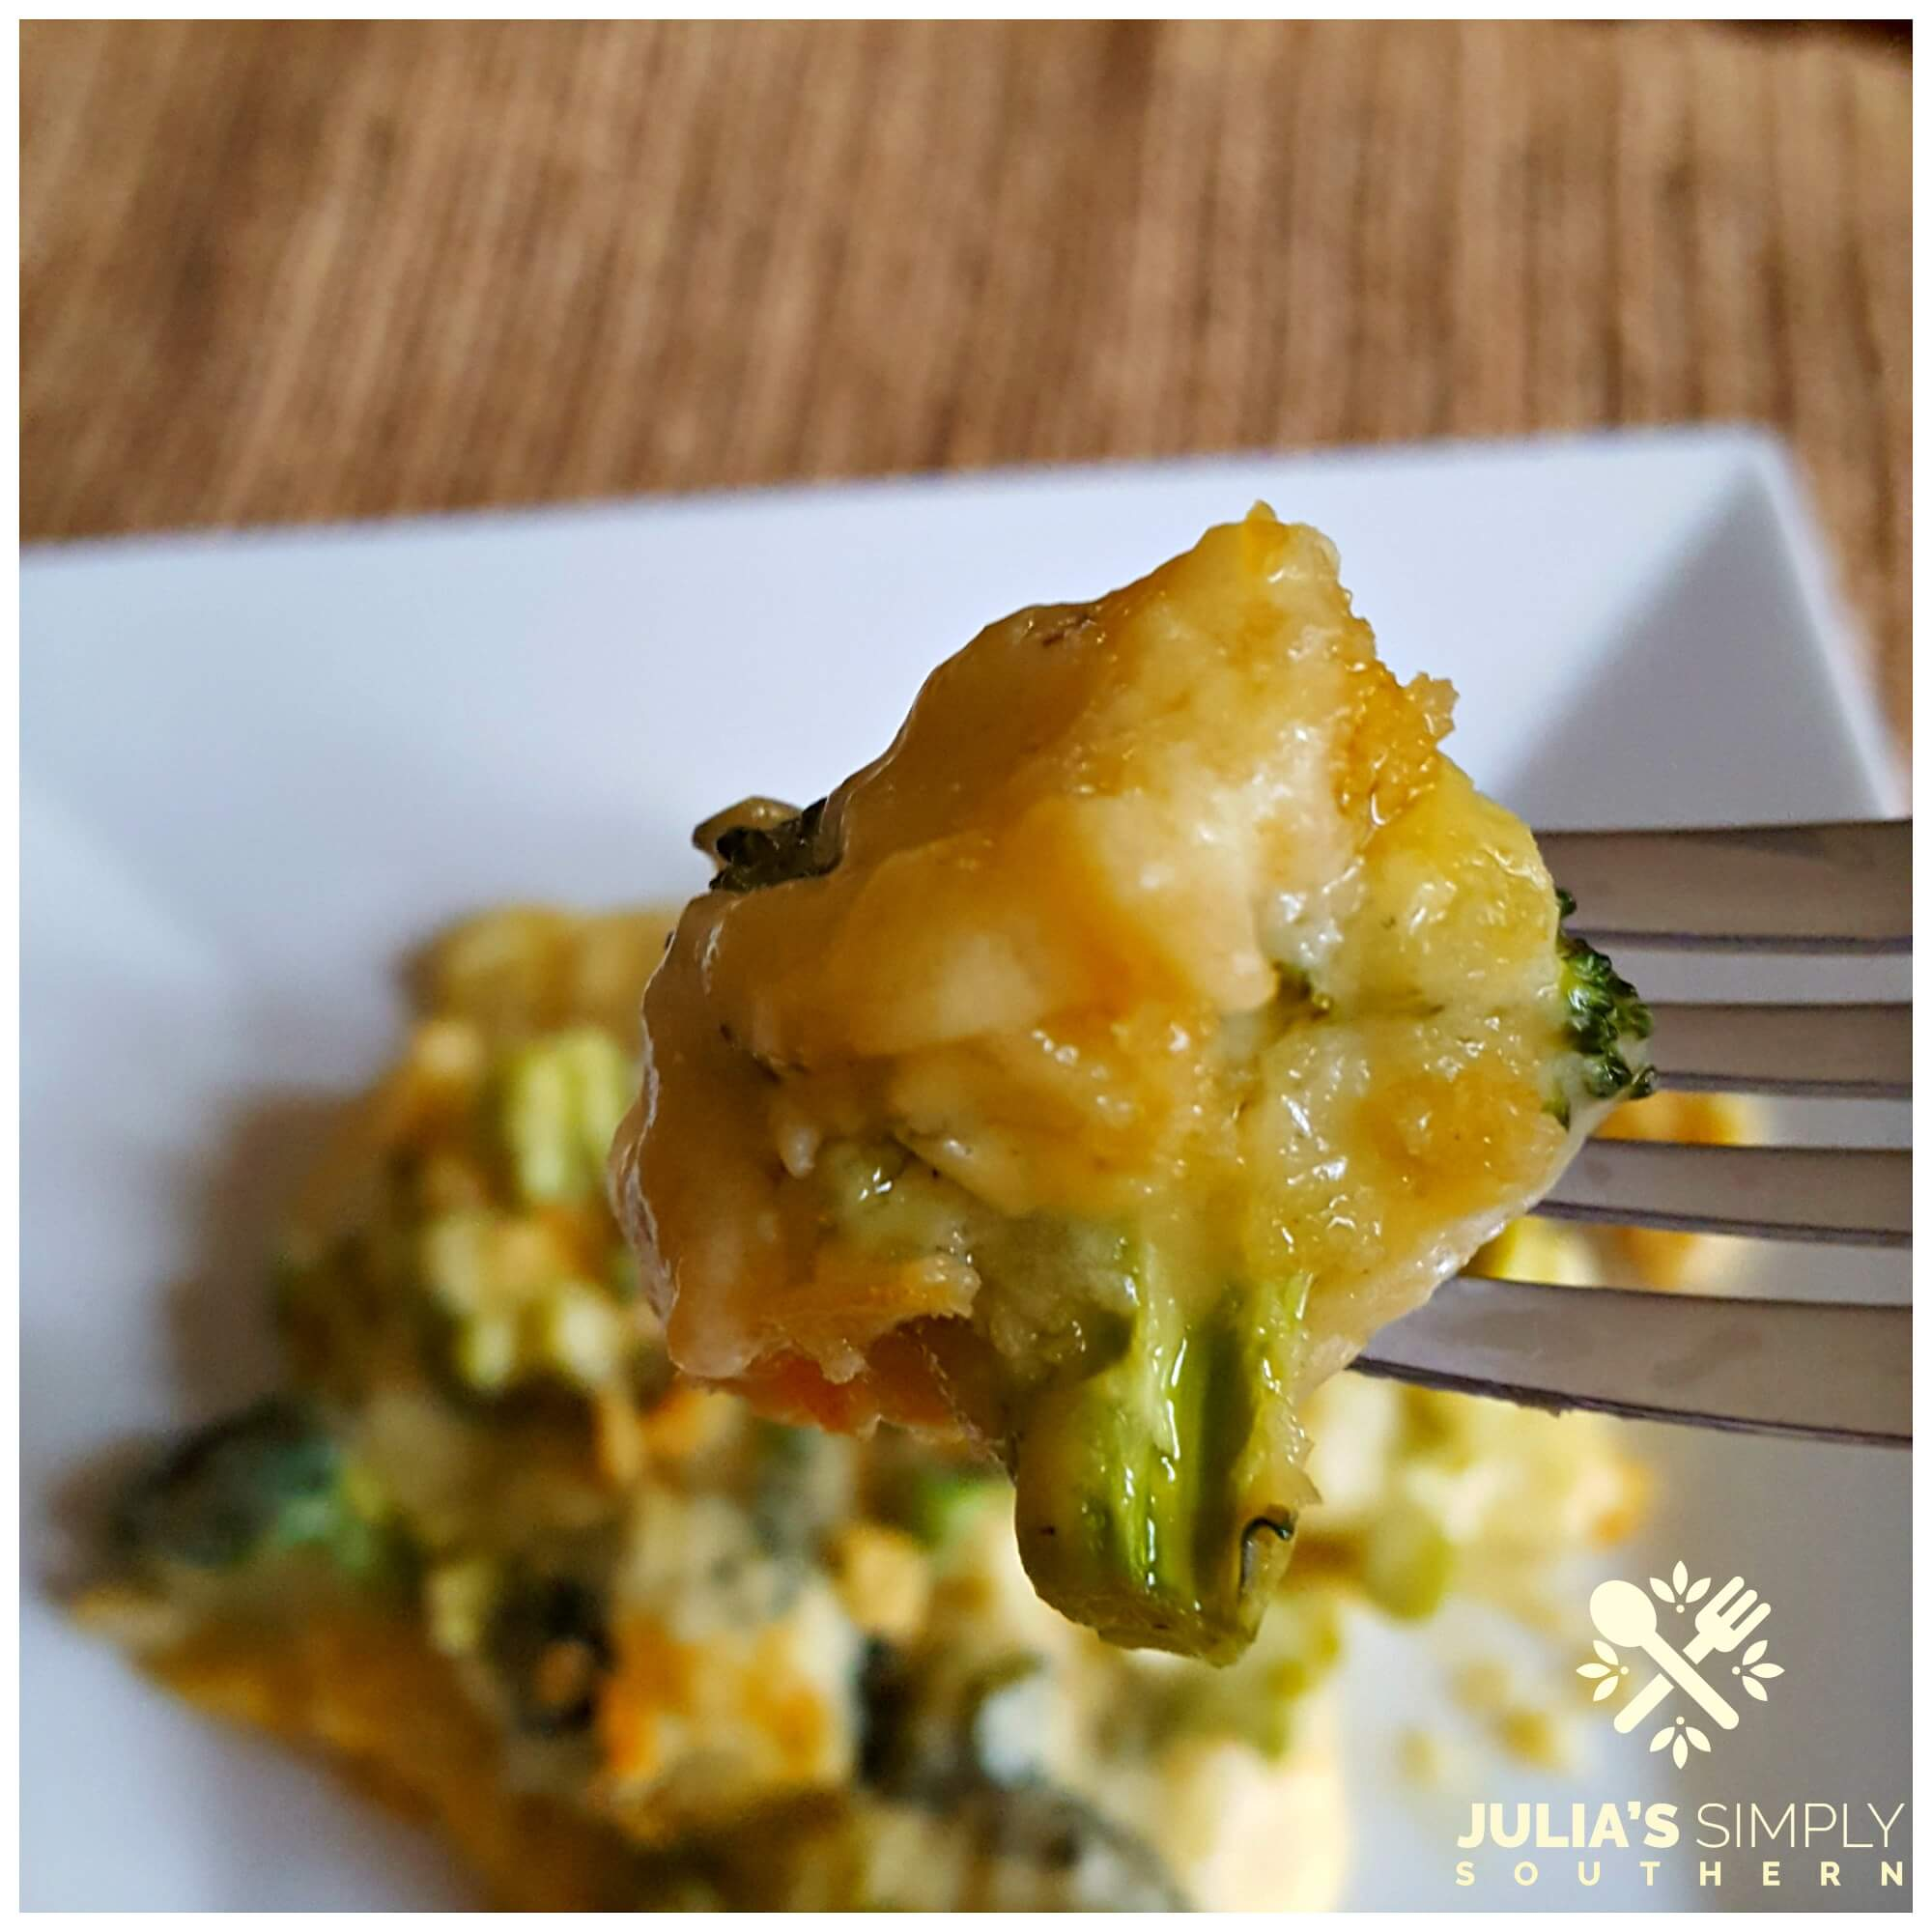 Broccoli and cheese on a white plate